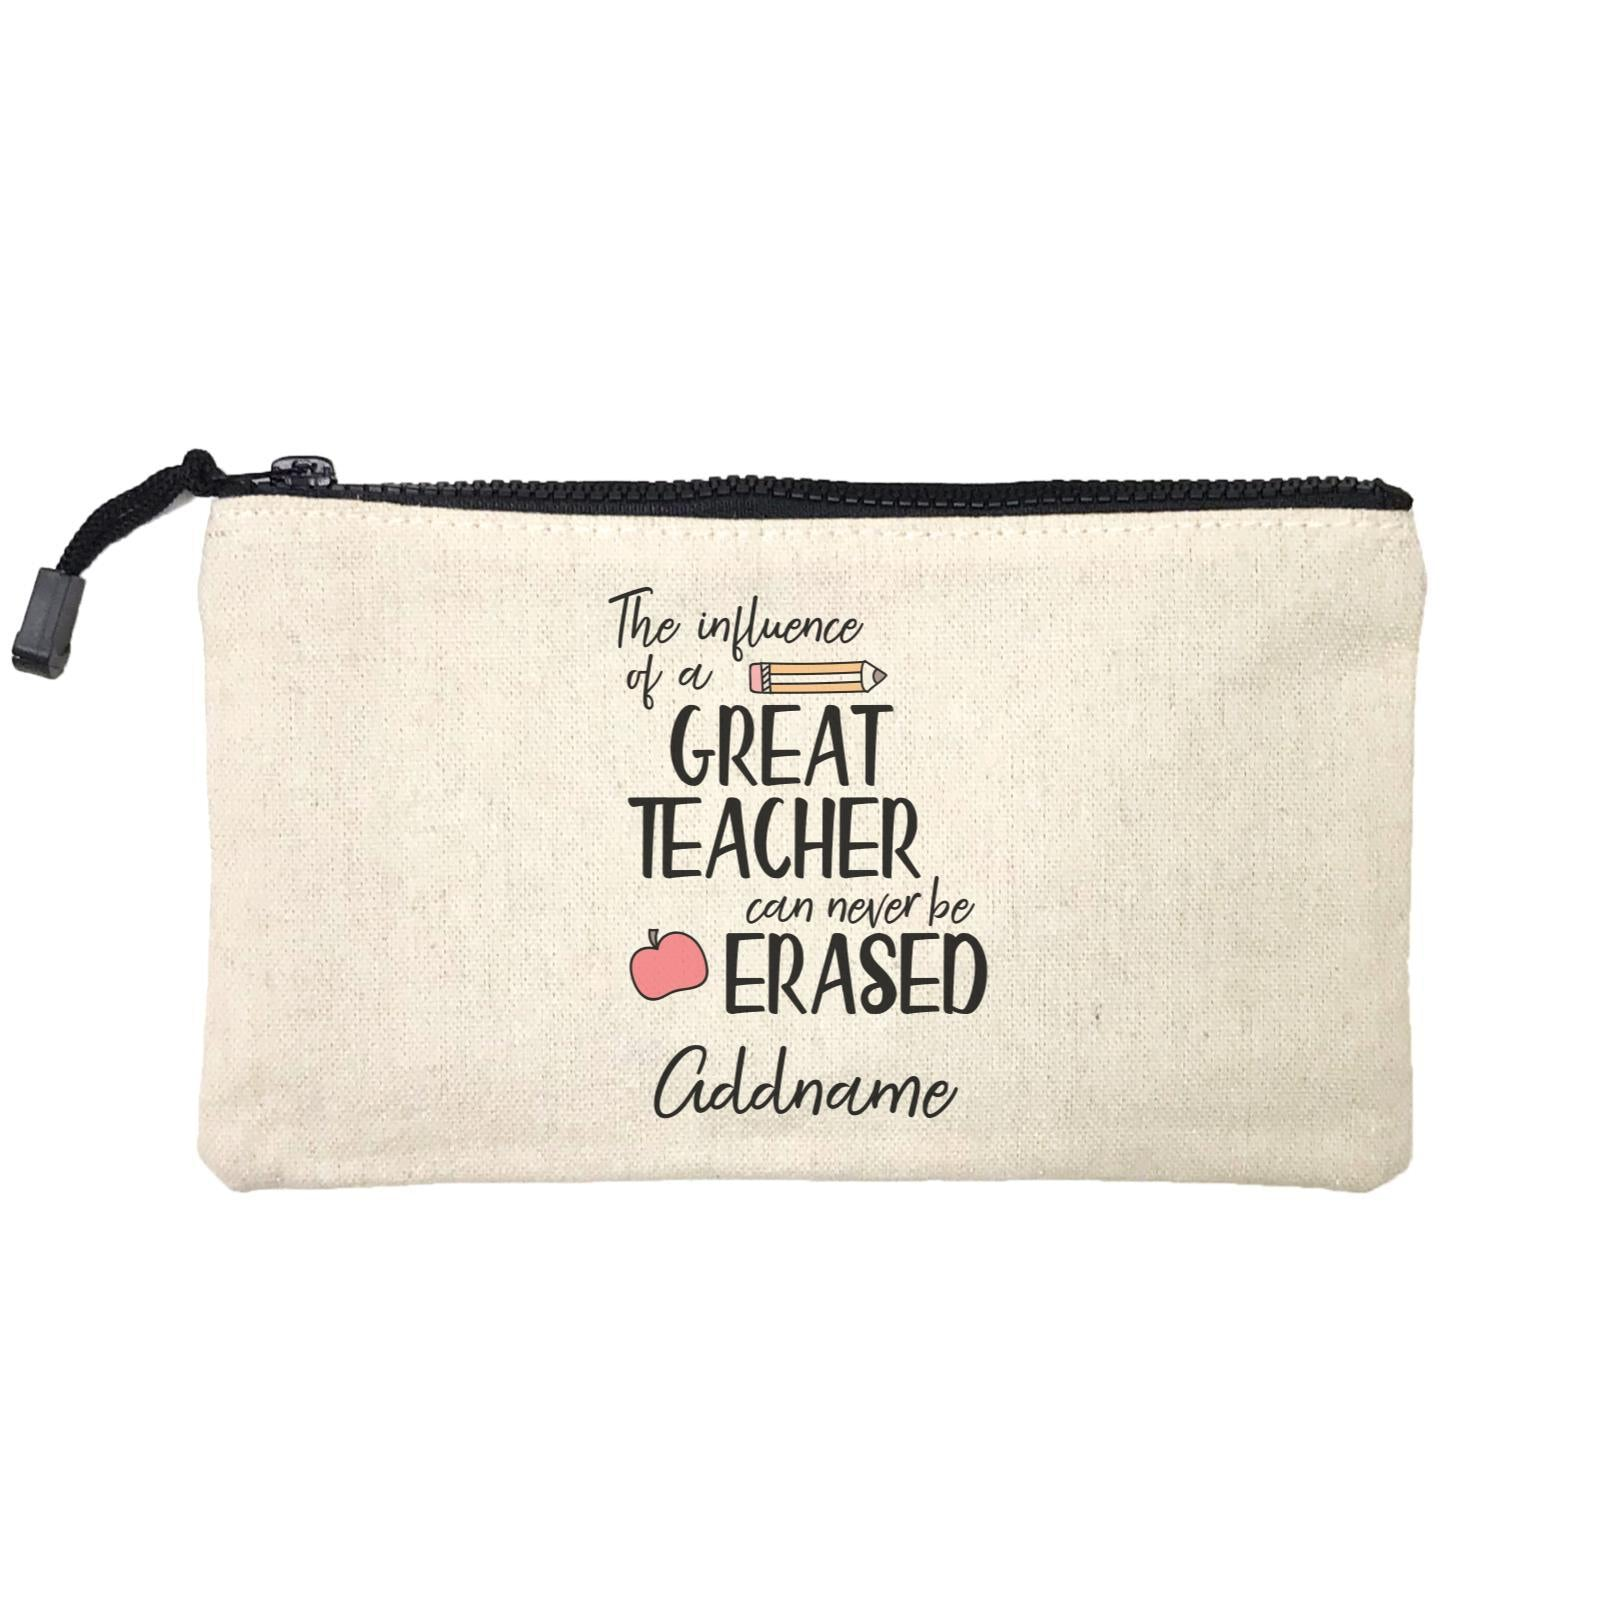 Teacher Quotes The Influence Of A Great Teacher Can Never Be Erased Addname Mini Accessories Stationery Pouch